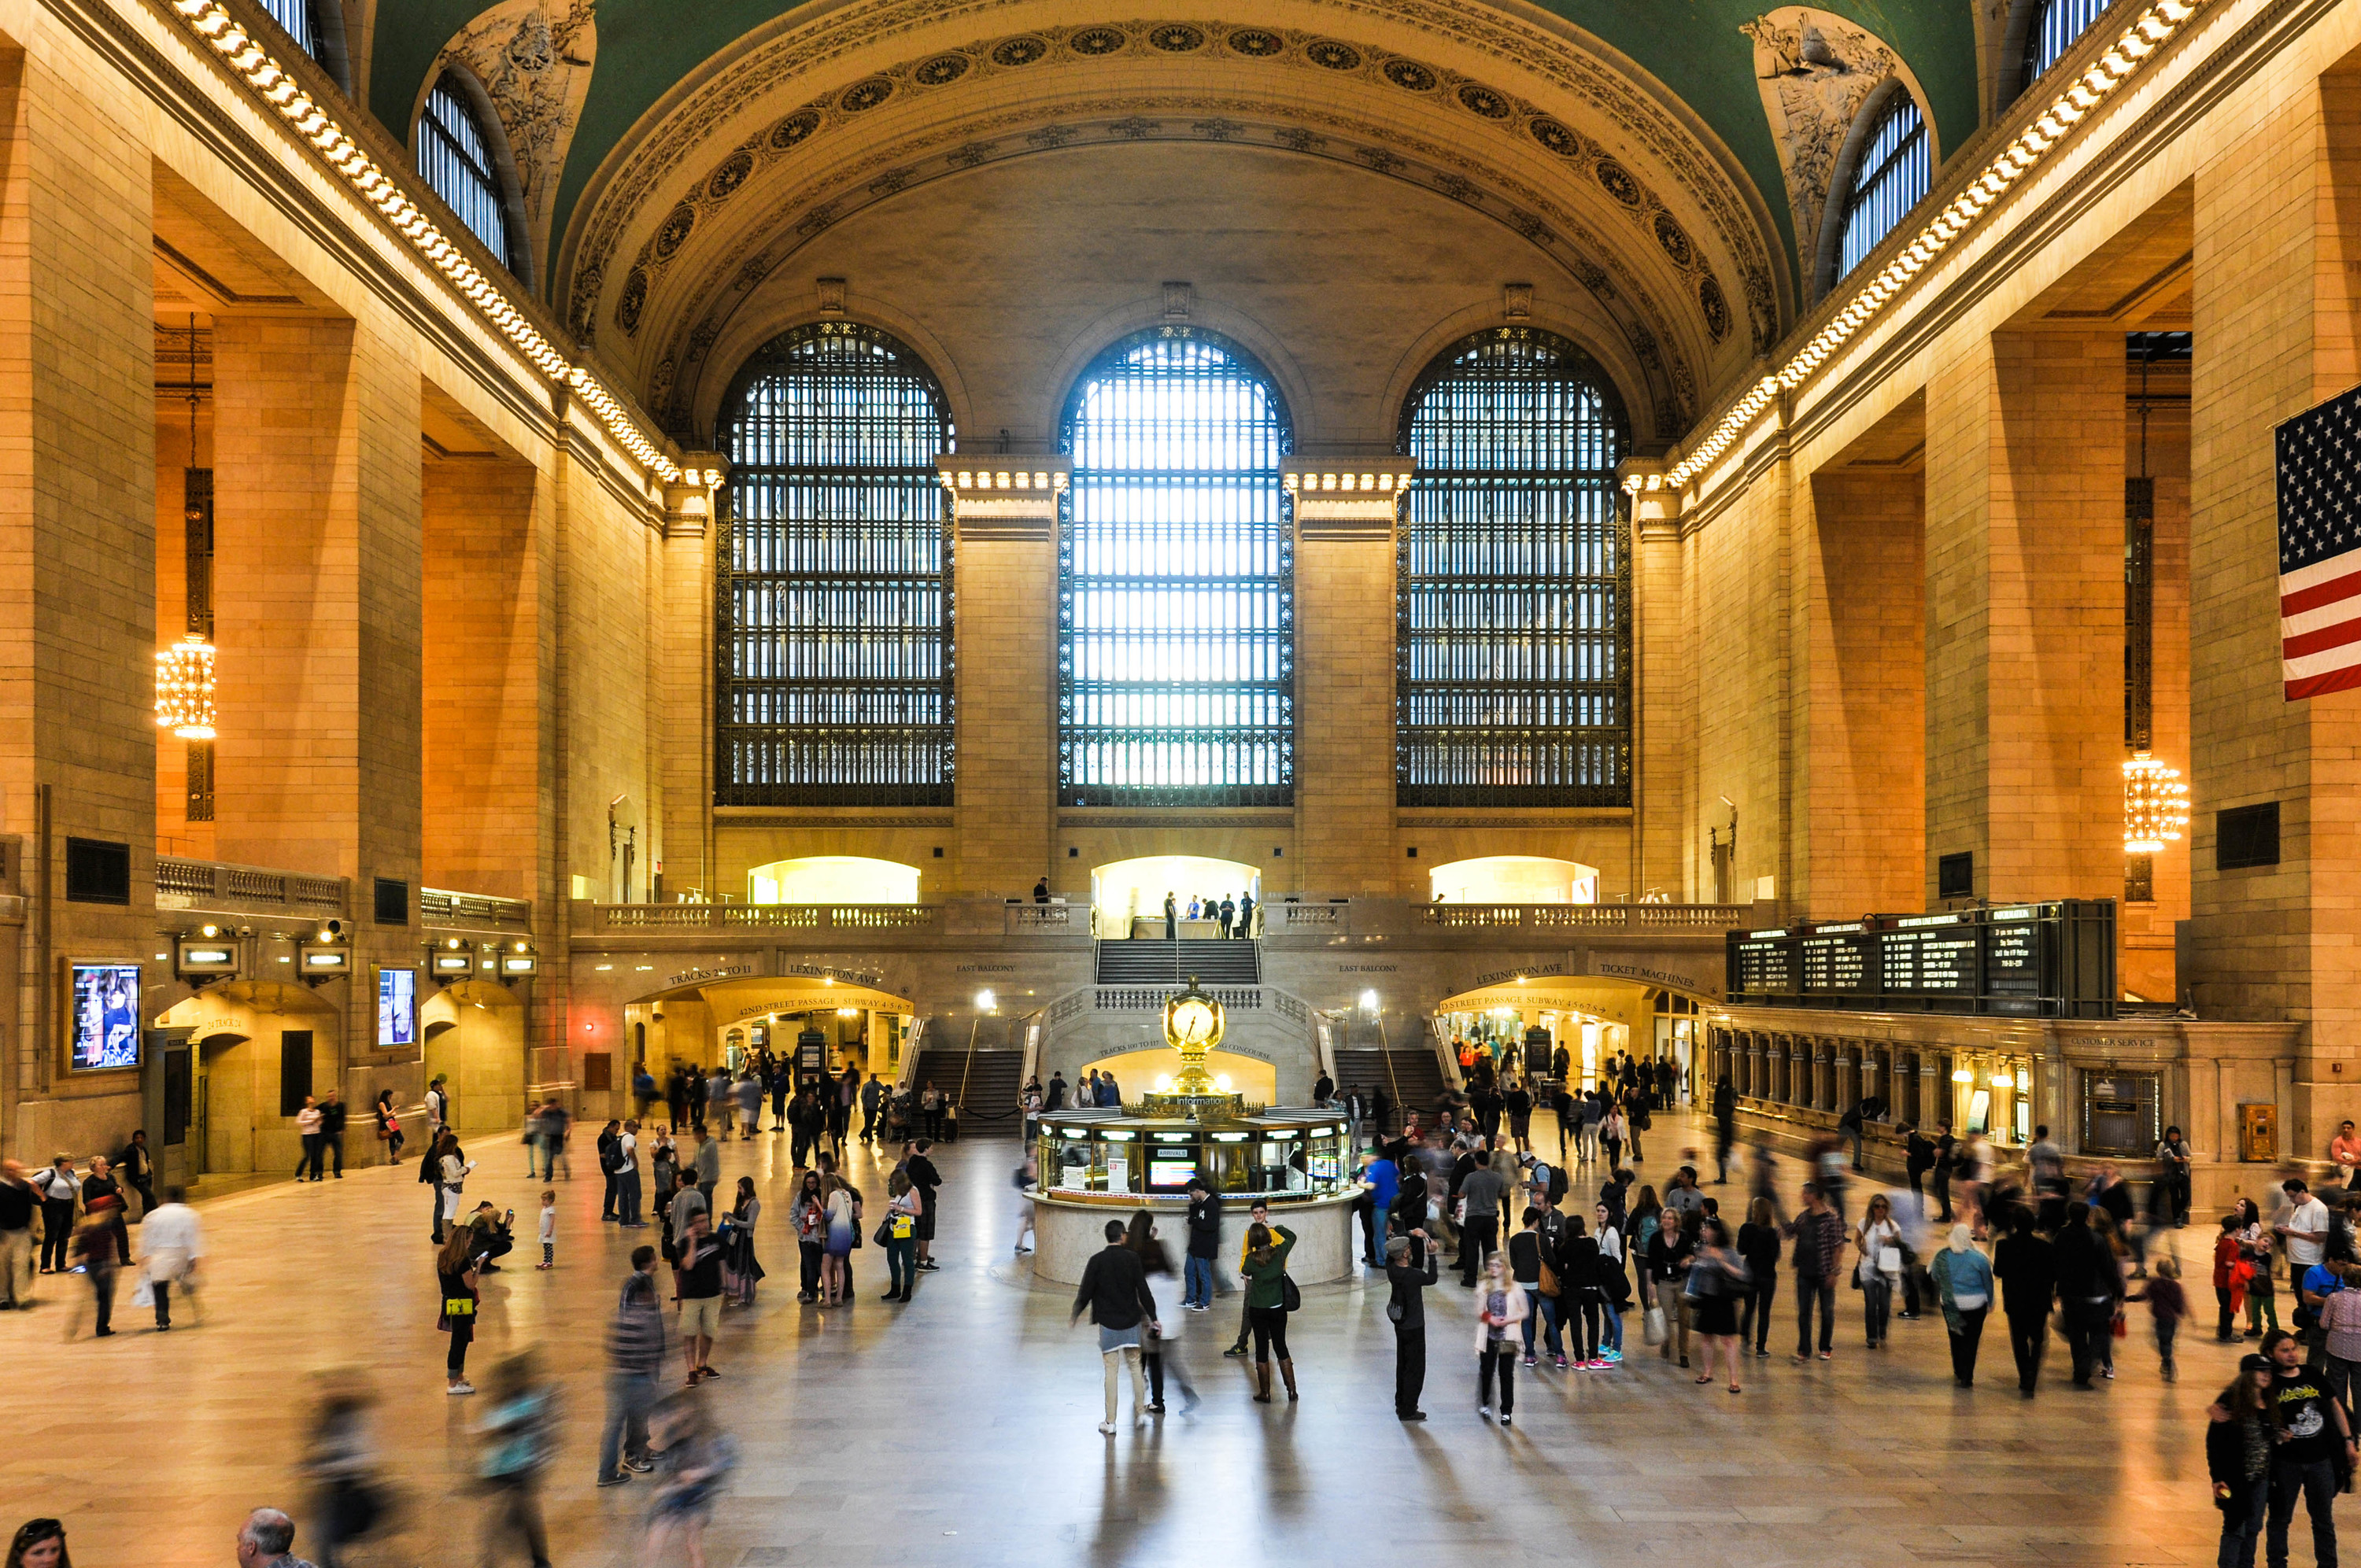 The bar carts will most likely be disappearing from Grand Central Terminal